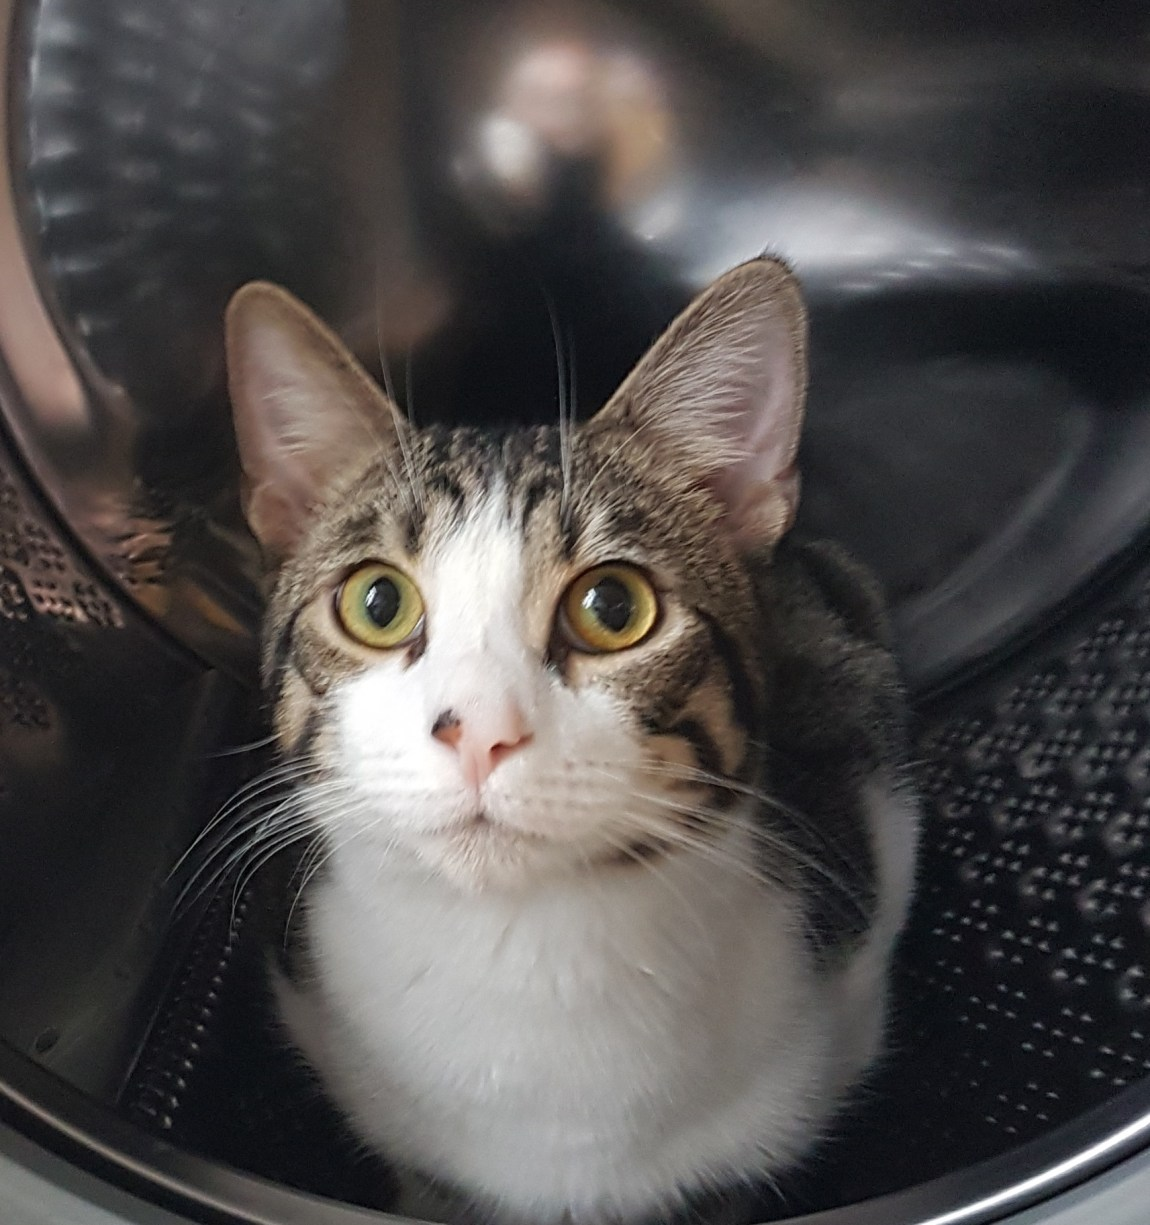 A family pet grey and white cat sat in an empty washing machine